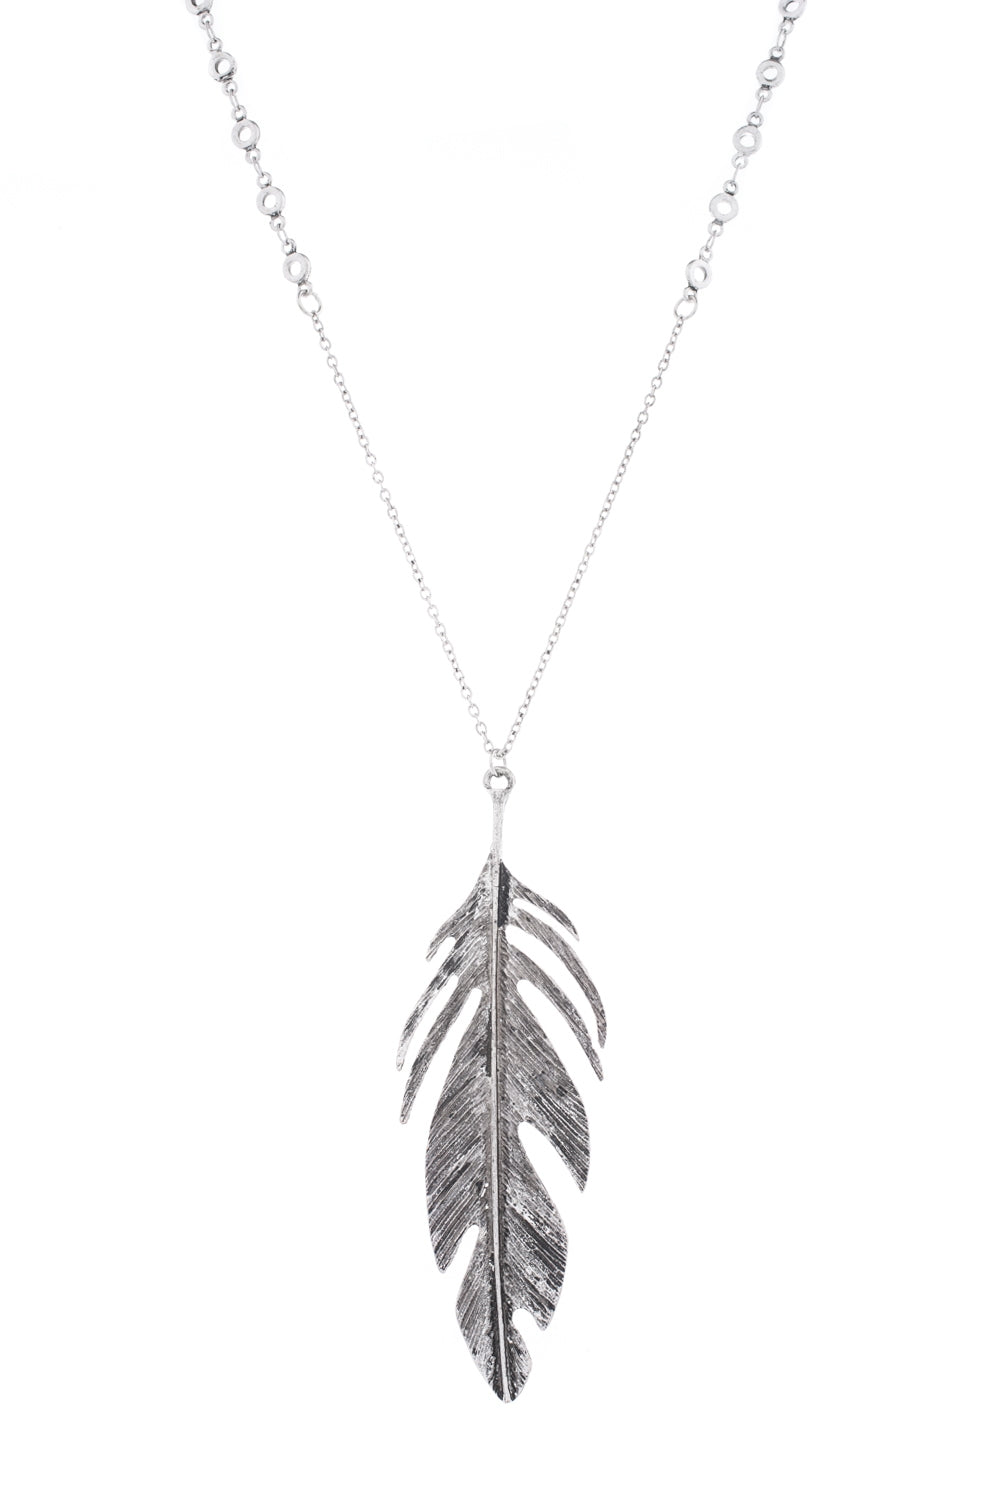 Type 2 Delicate Feather Necklace